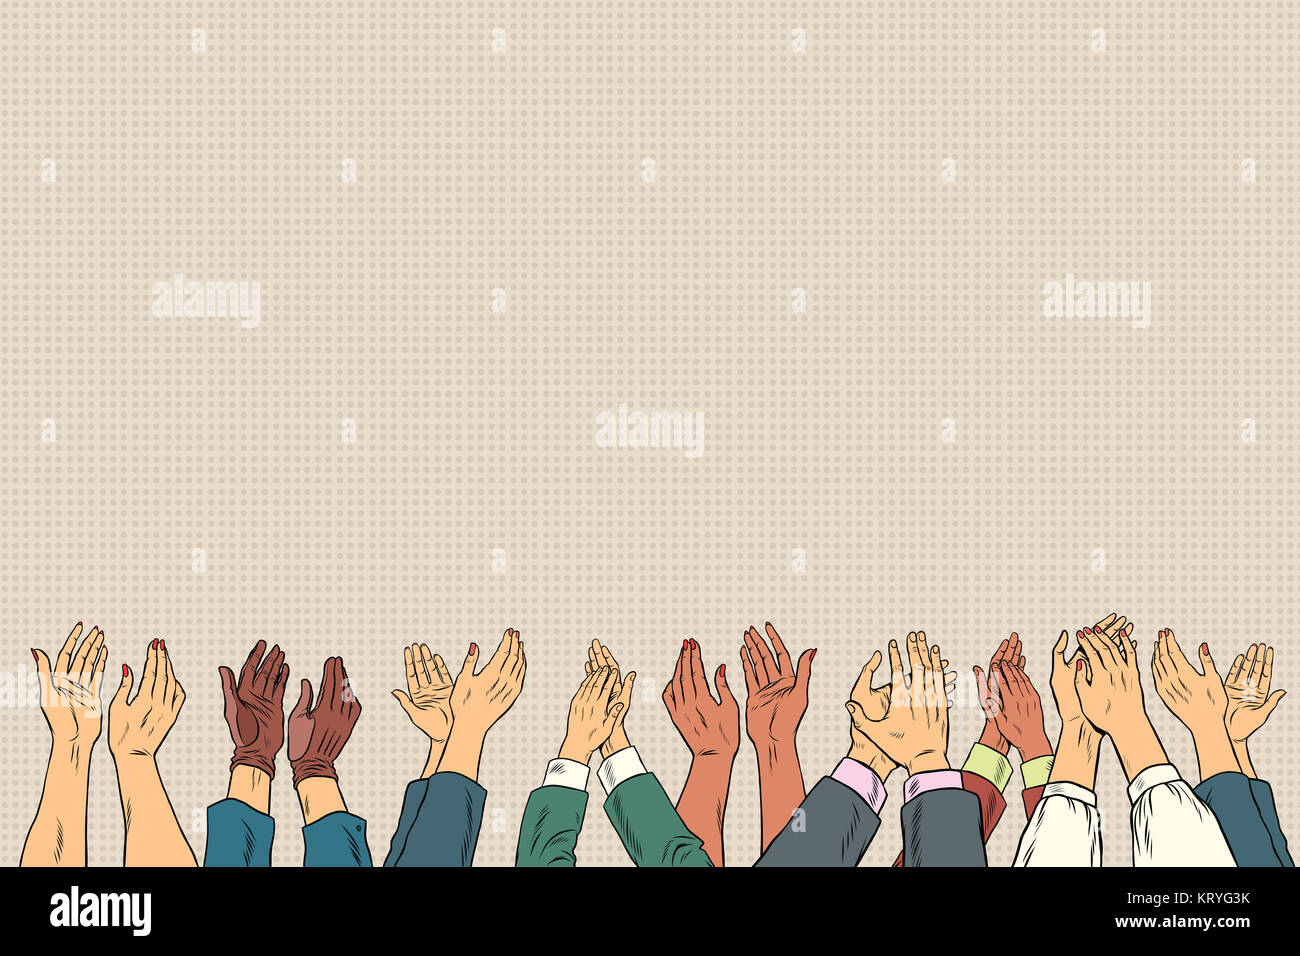 applause hands up in business conference stock photo 169635751 alamy